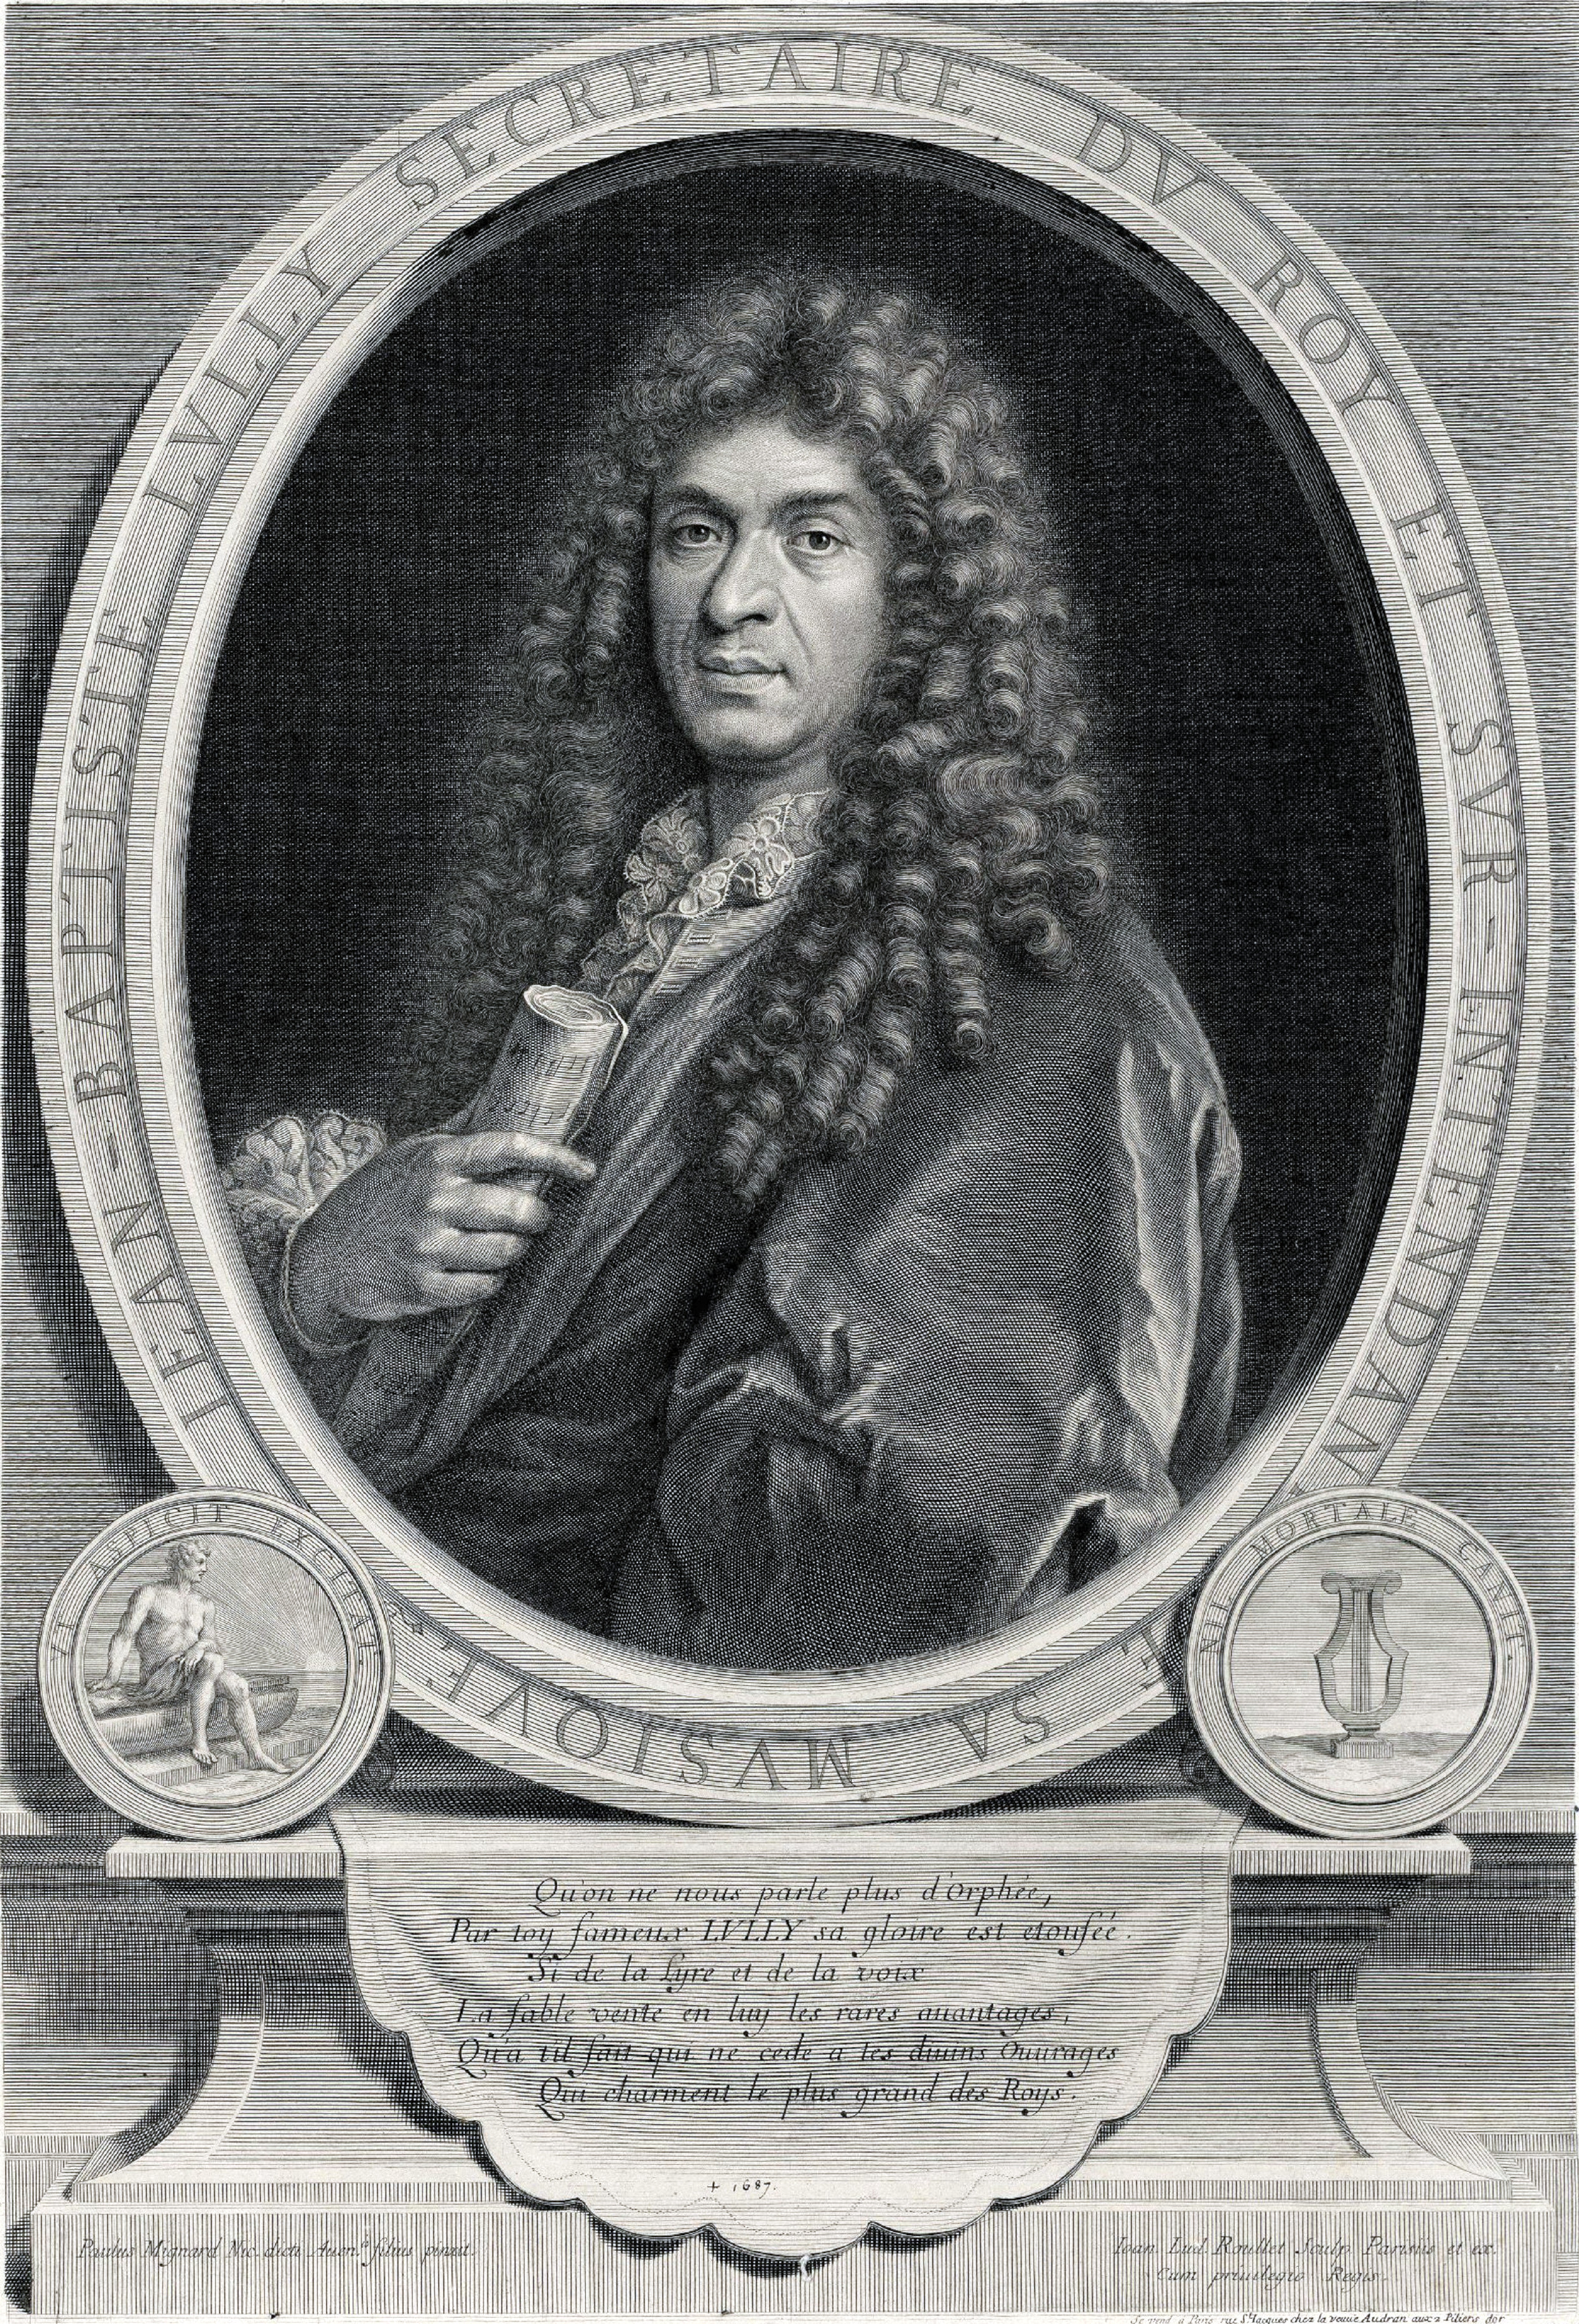 Depiction of Jean-Baptiste Lully